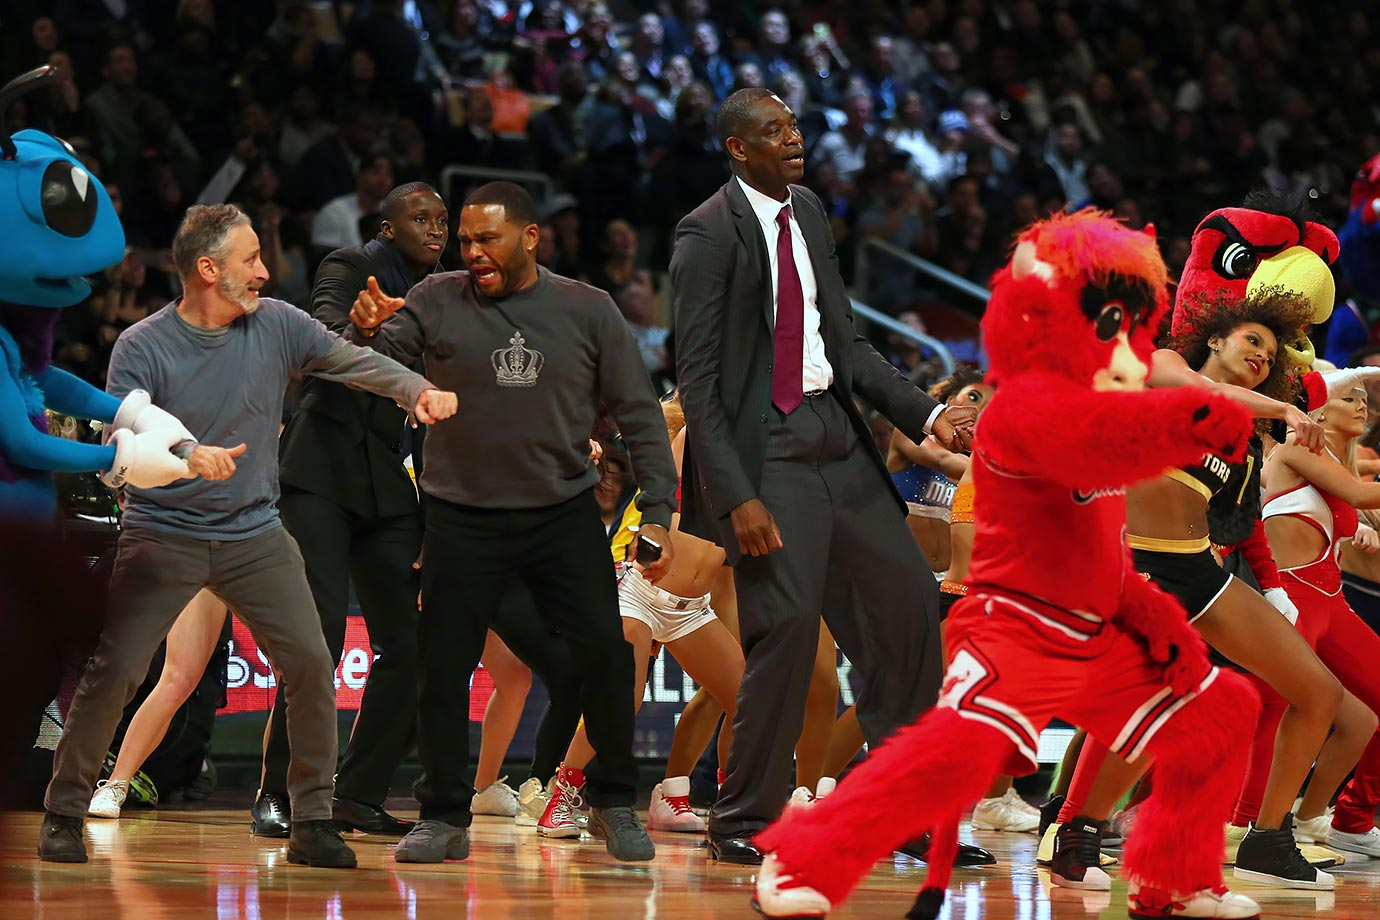 Jon Stewart, Victor Oladipo, Anthony Anderson and Dikembe Mutombo dance on the court during NBA All-Star Weekend 2016 in Toronto.